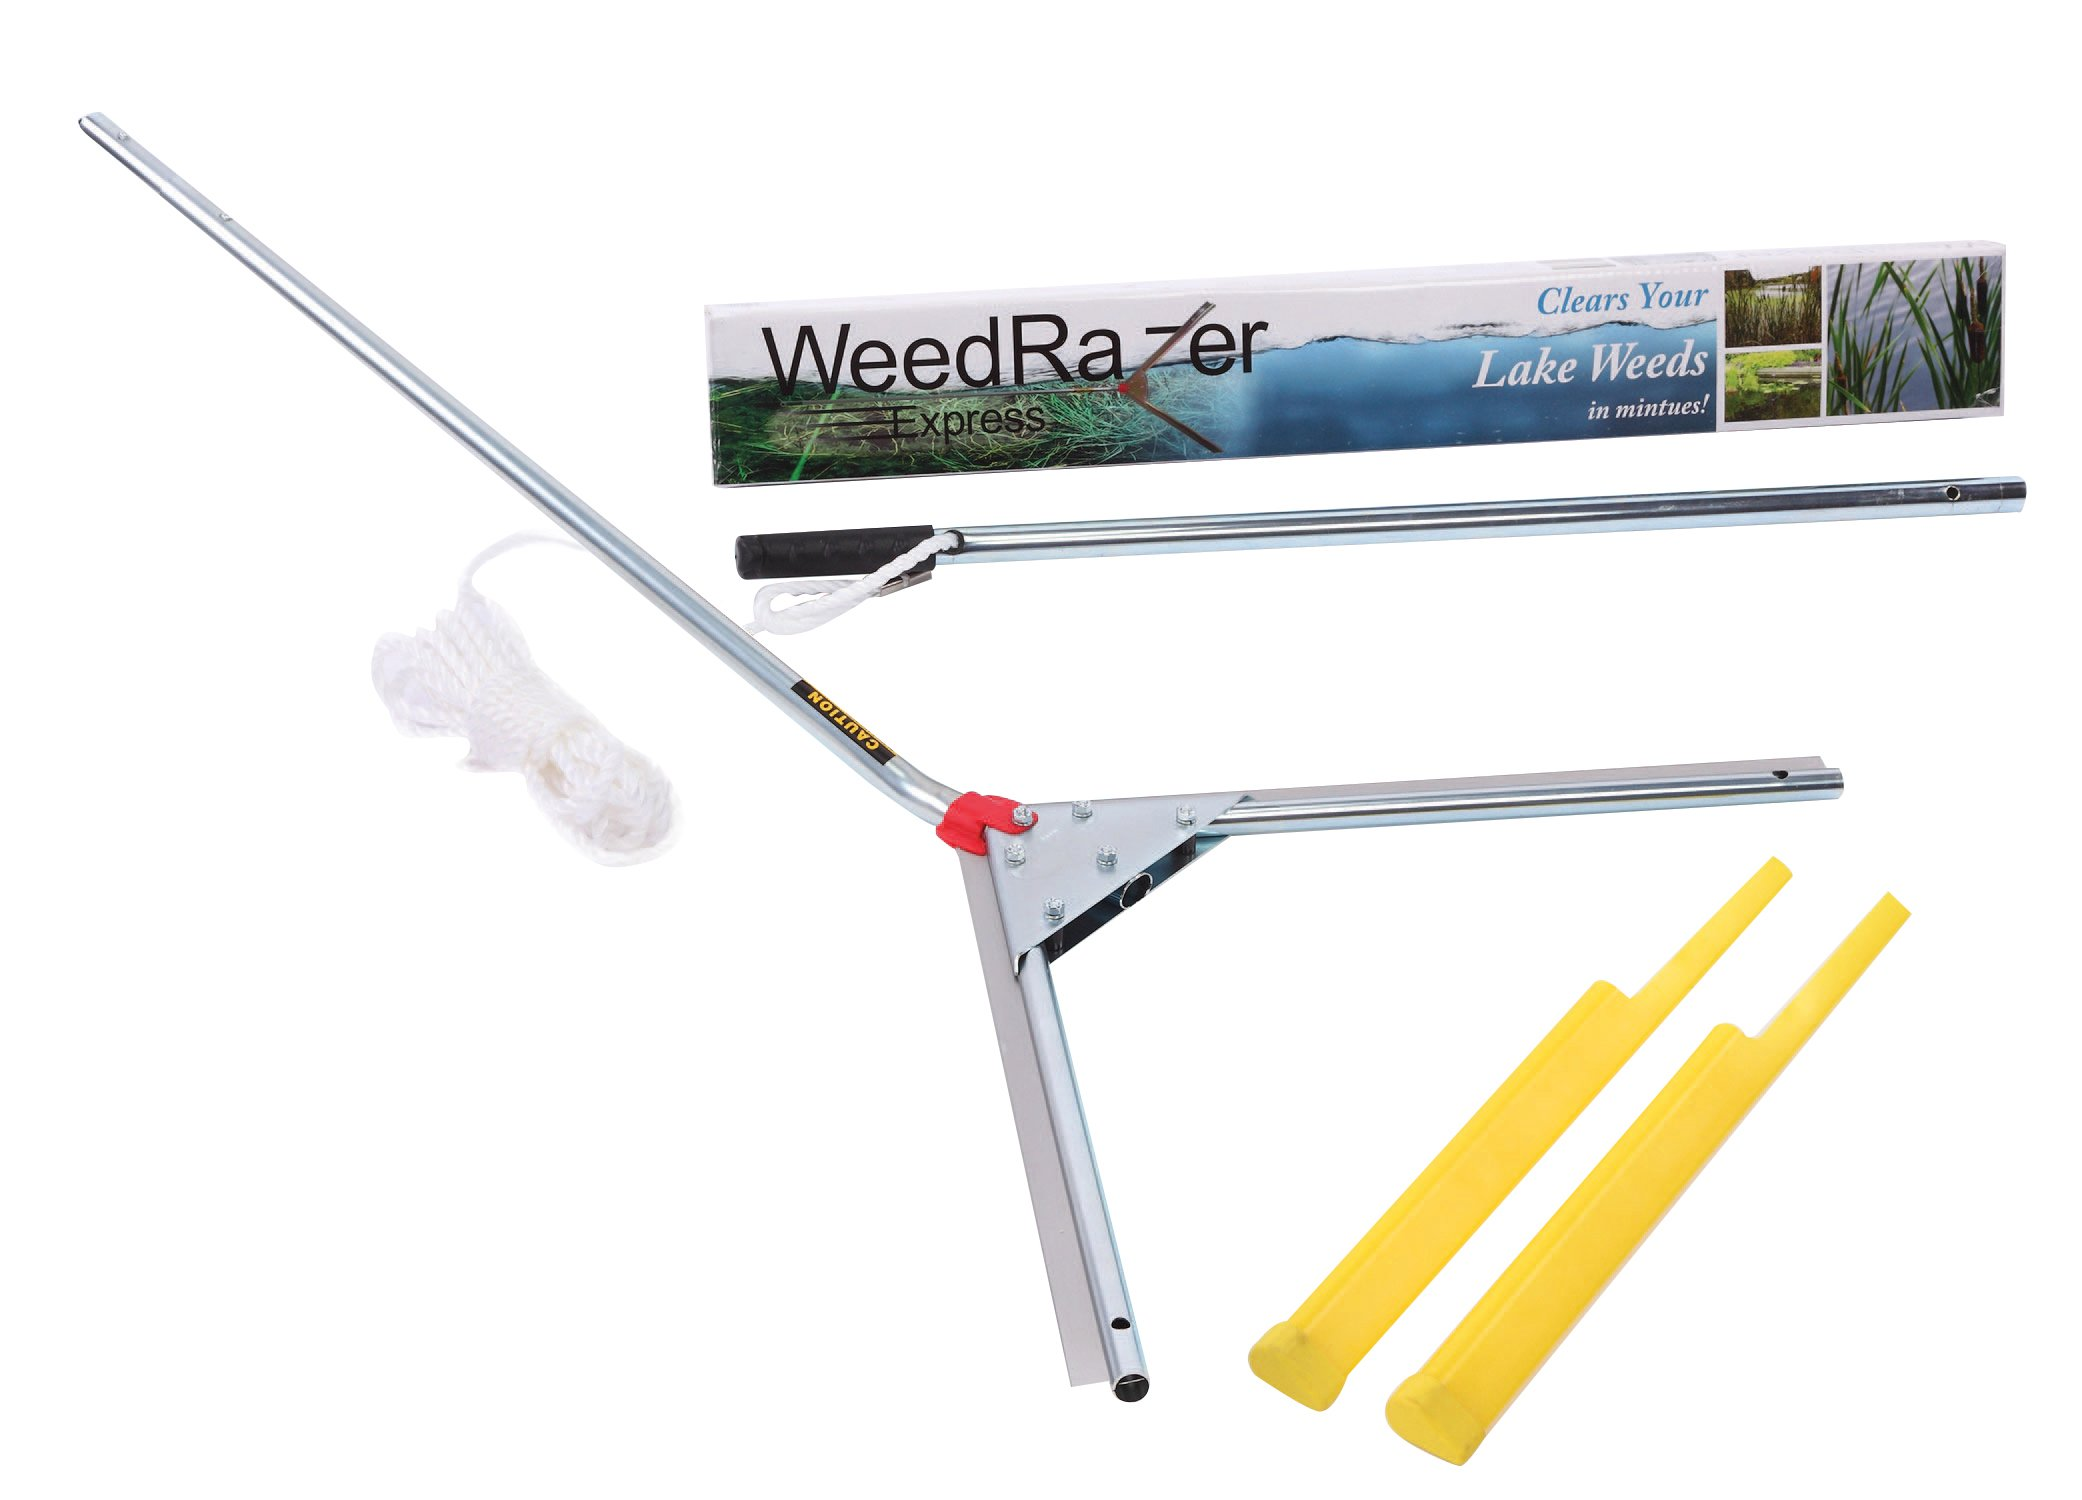 Jenlis Weed Razer Express - Aquatic Weed Cutter for Lakes, Ponds & Beaches